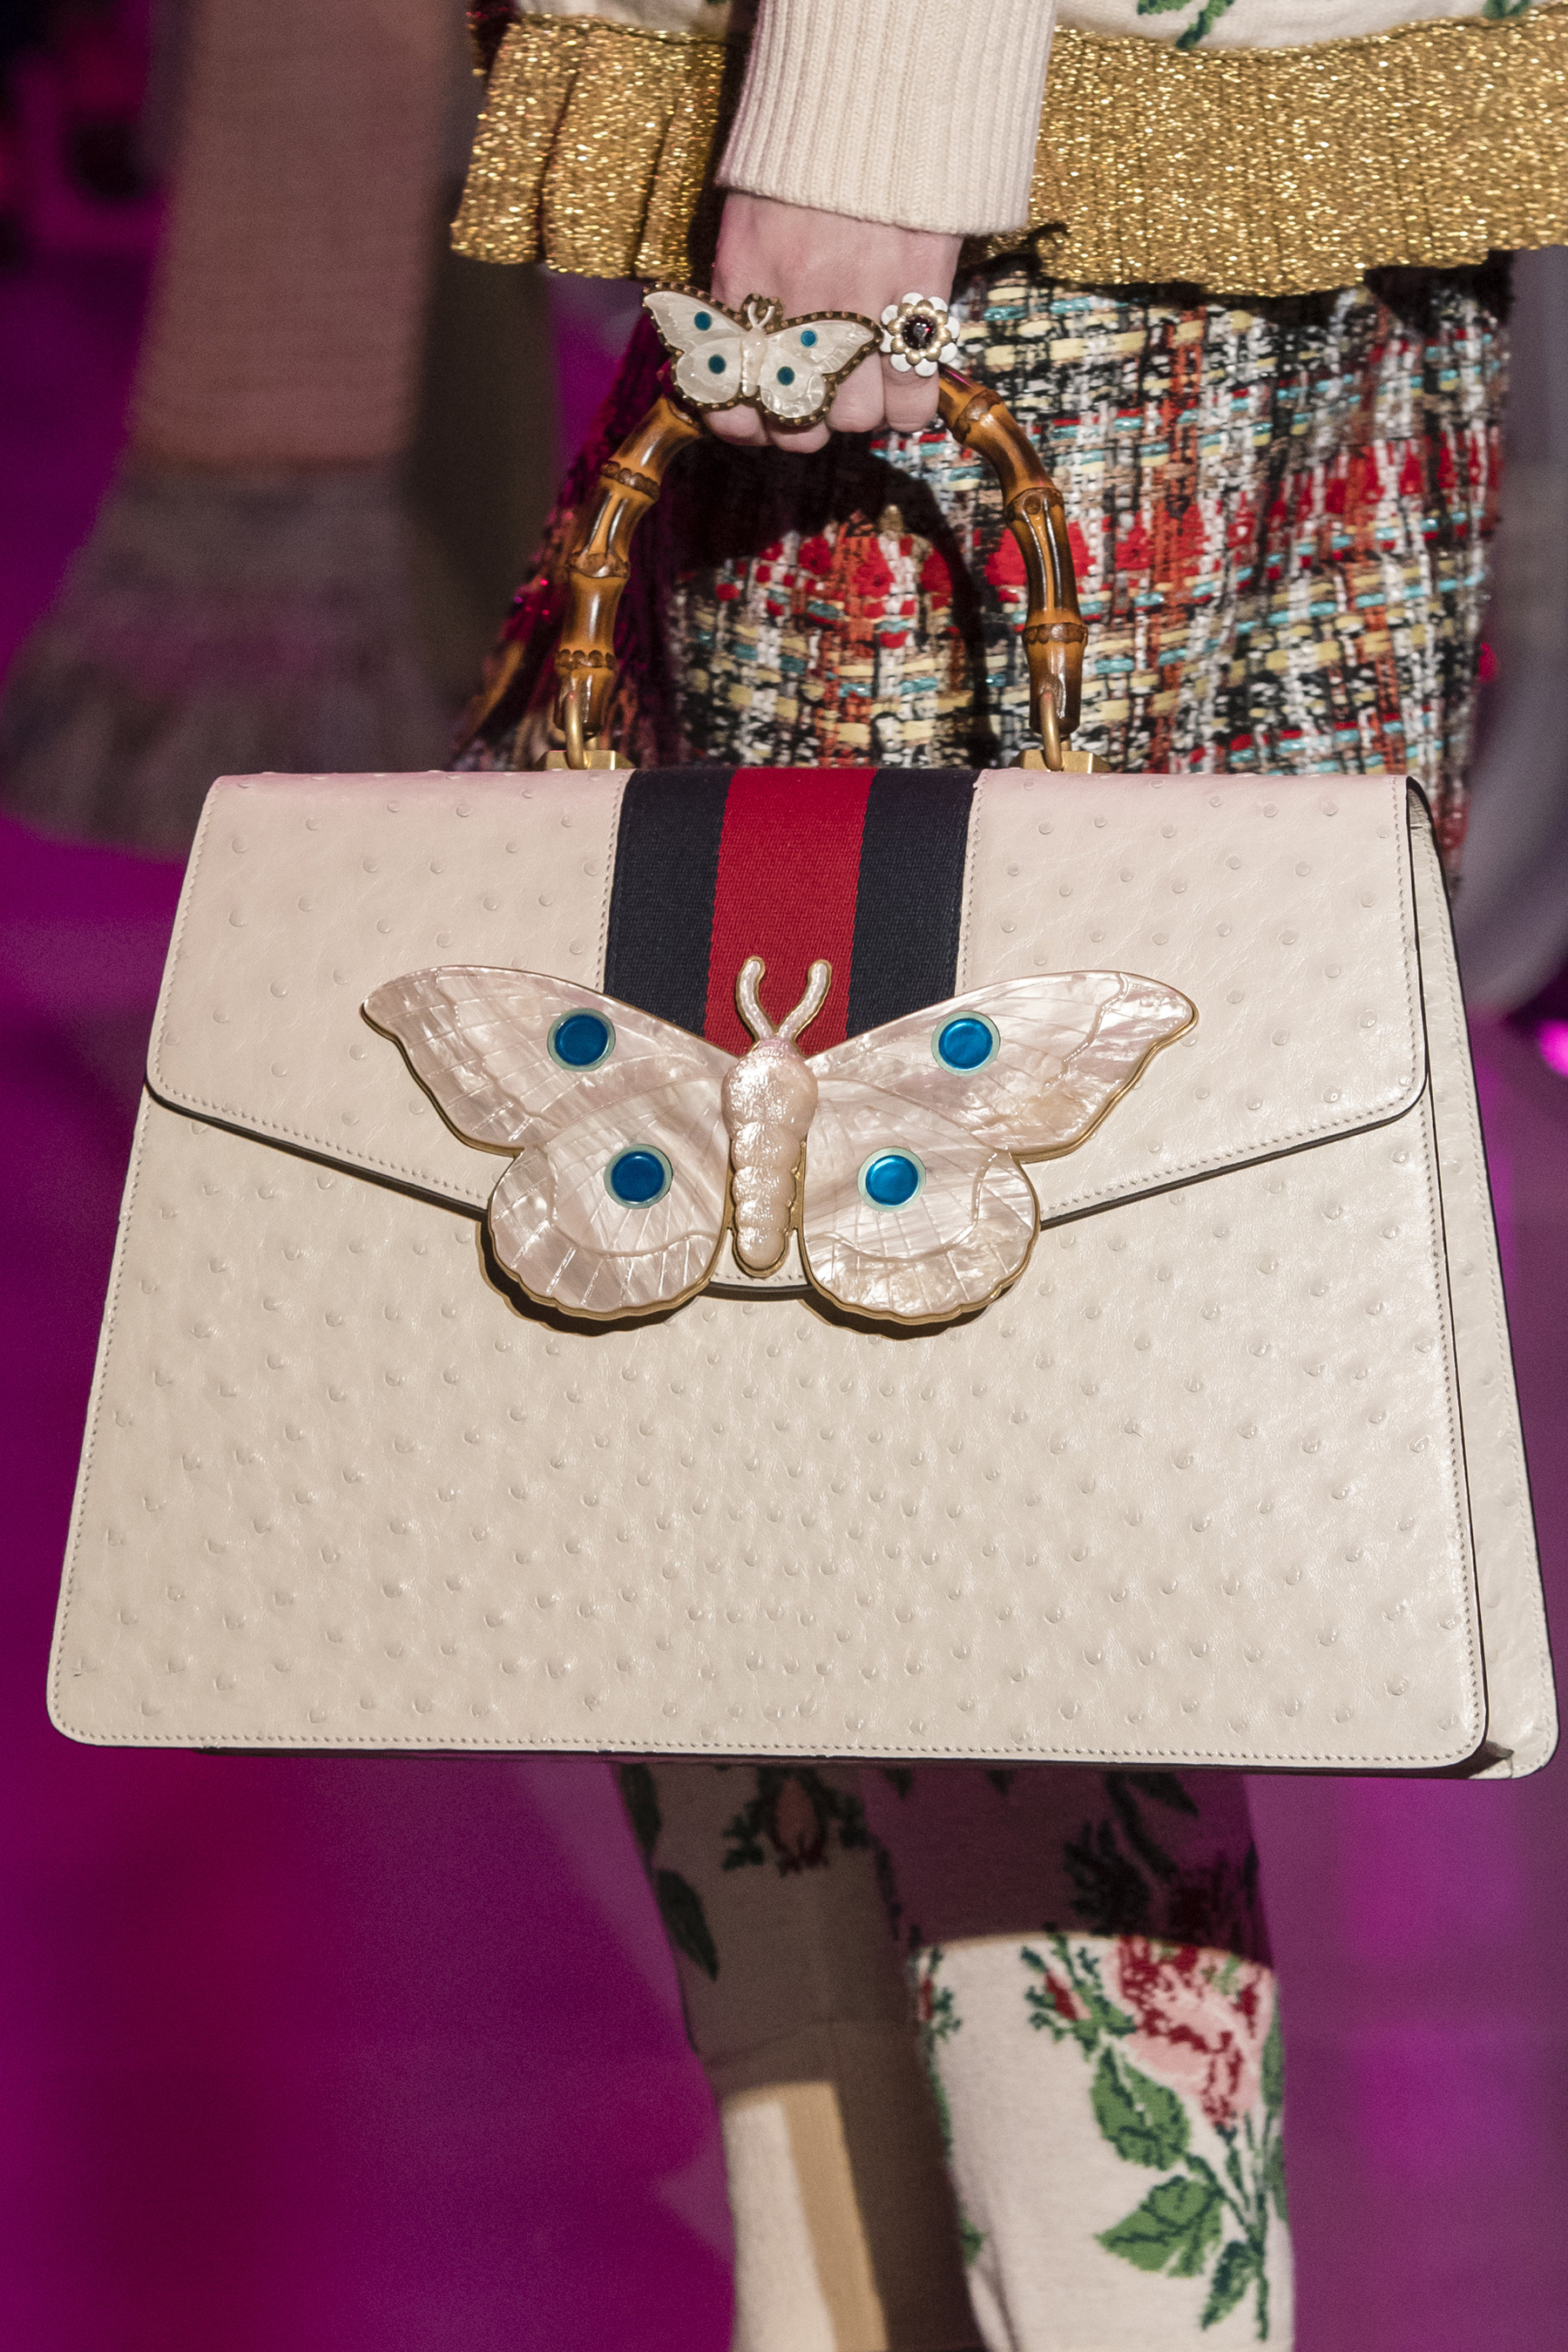 flur-magazine-best-bags-accessories-fashion-weeks-gucci-clp-rf17-8125